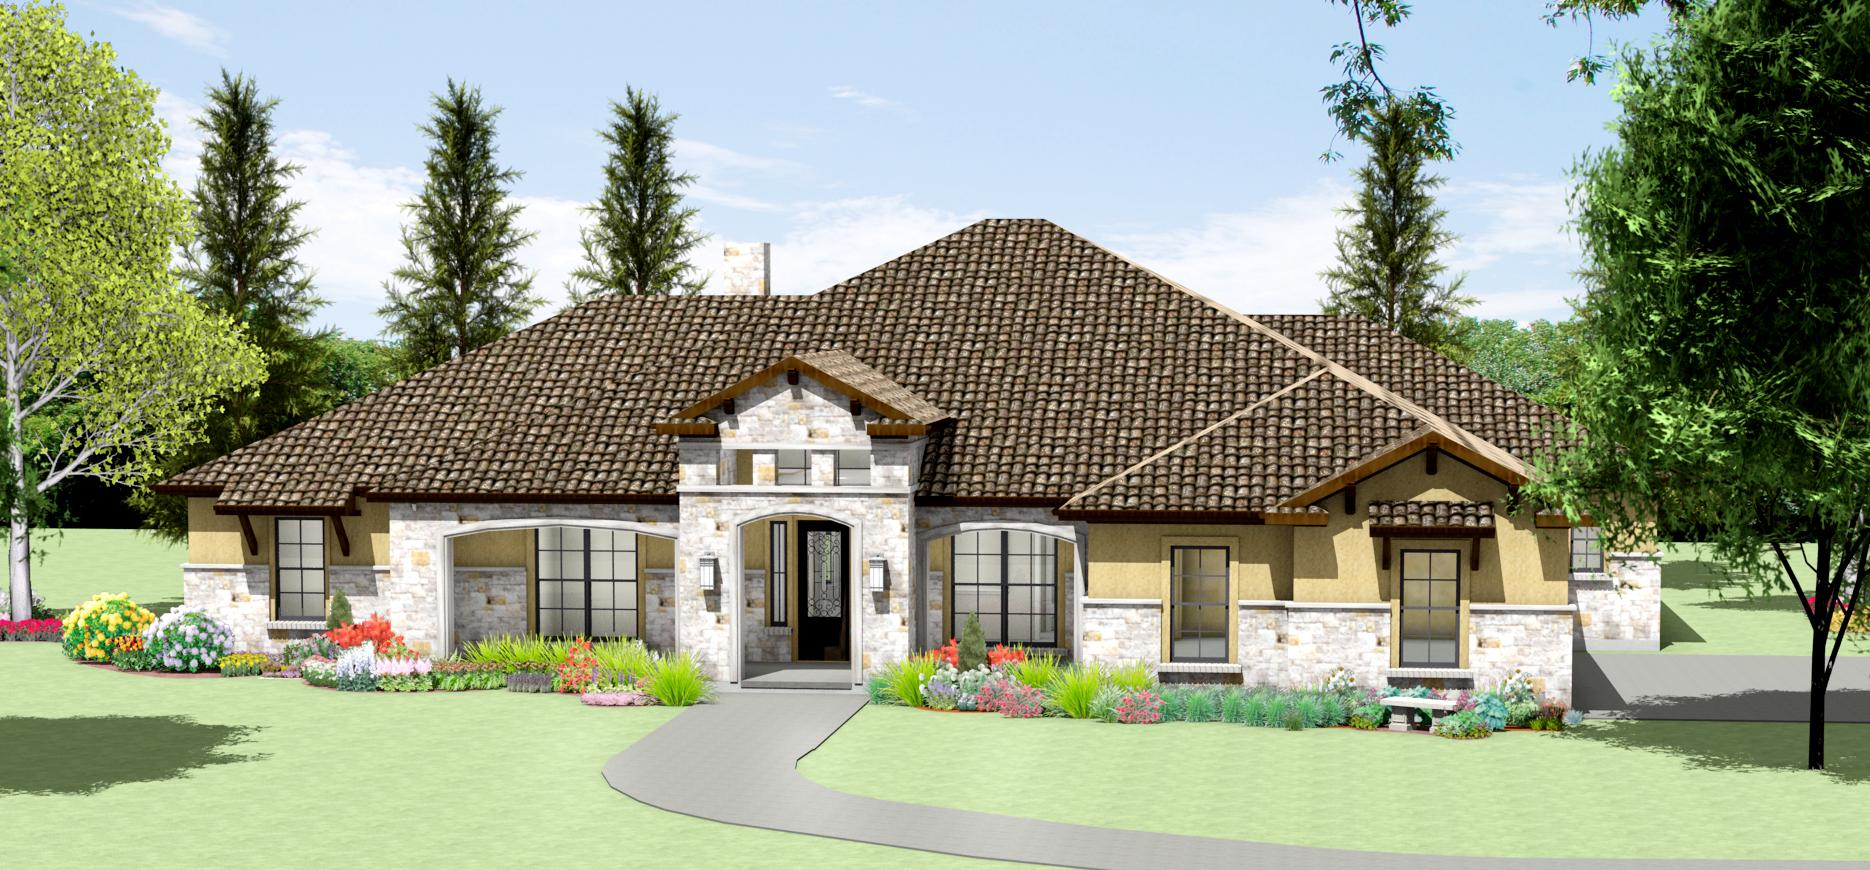 S3450r texas tuscan design texas house plans over 700 for Texas ranch style home plans